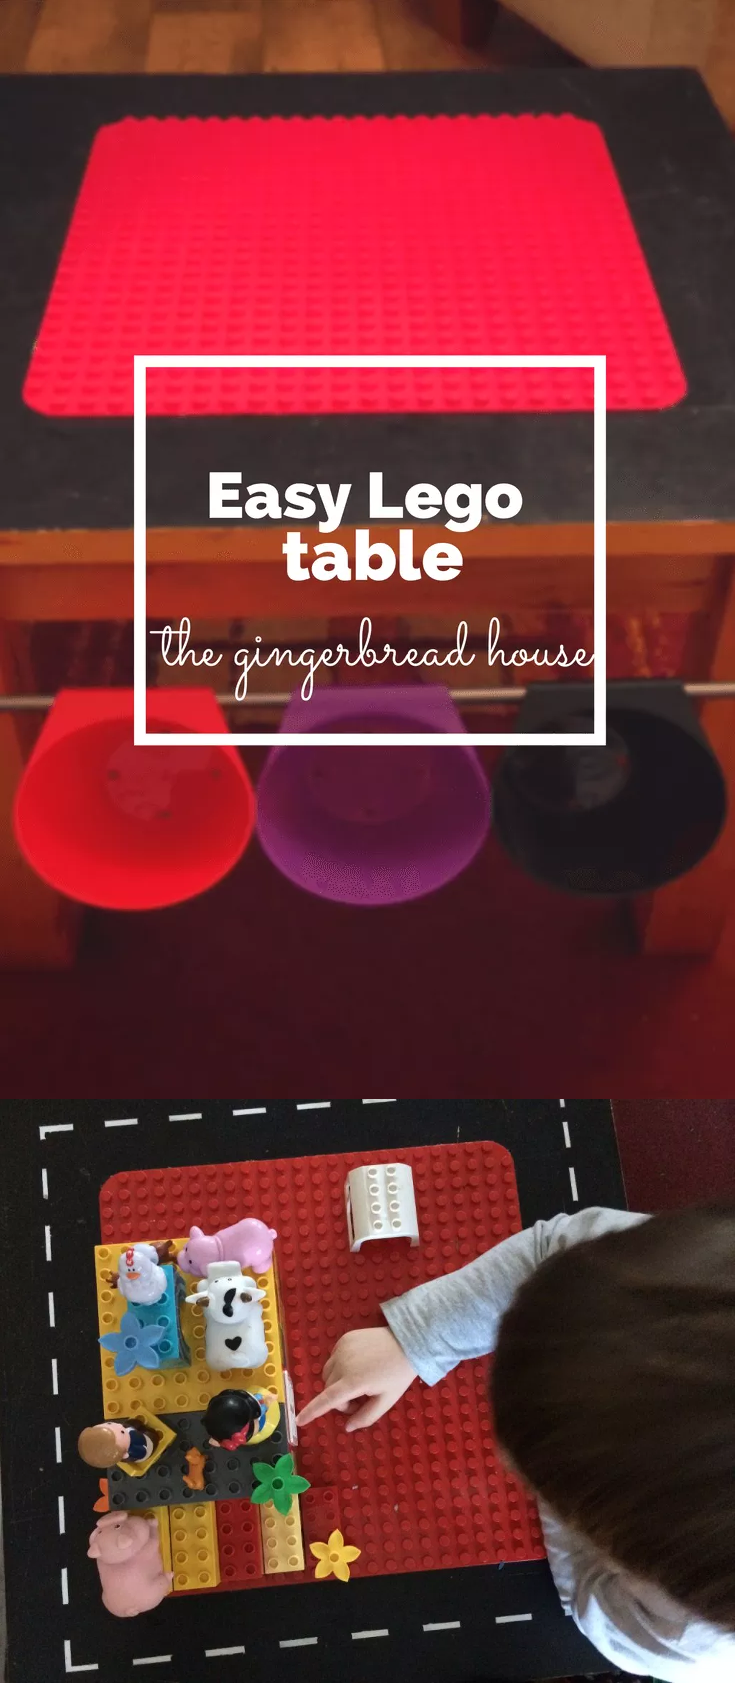 16 Use Bygel rails to turn a table into a Lego Duplo table via simphome